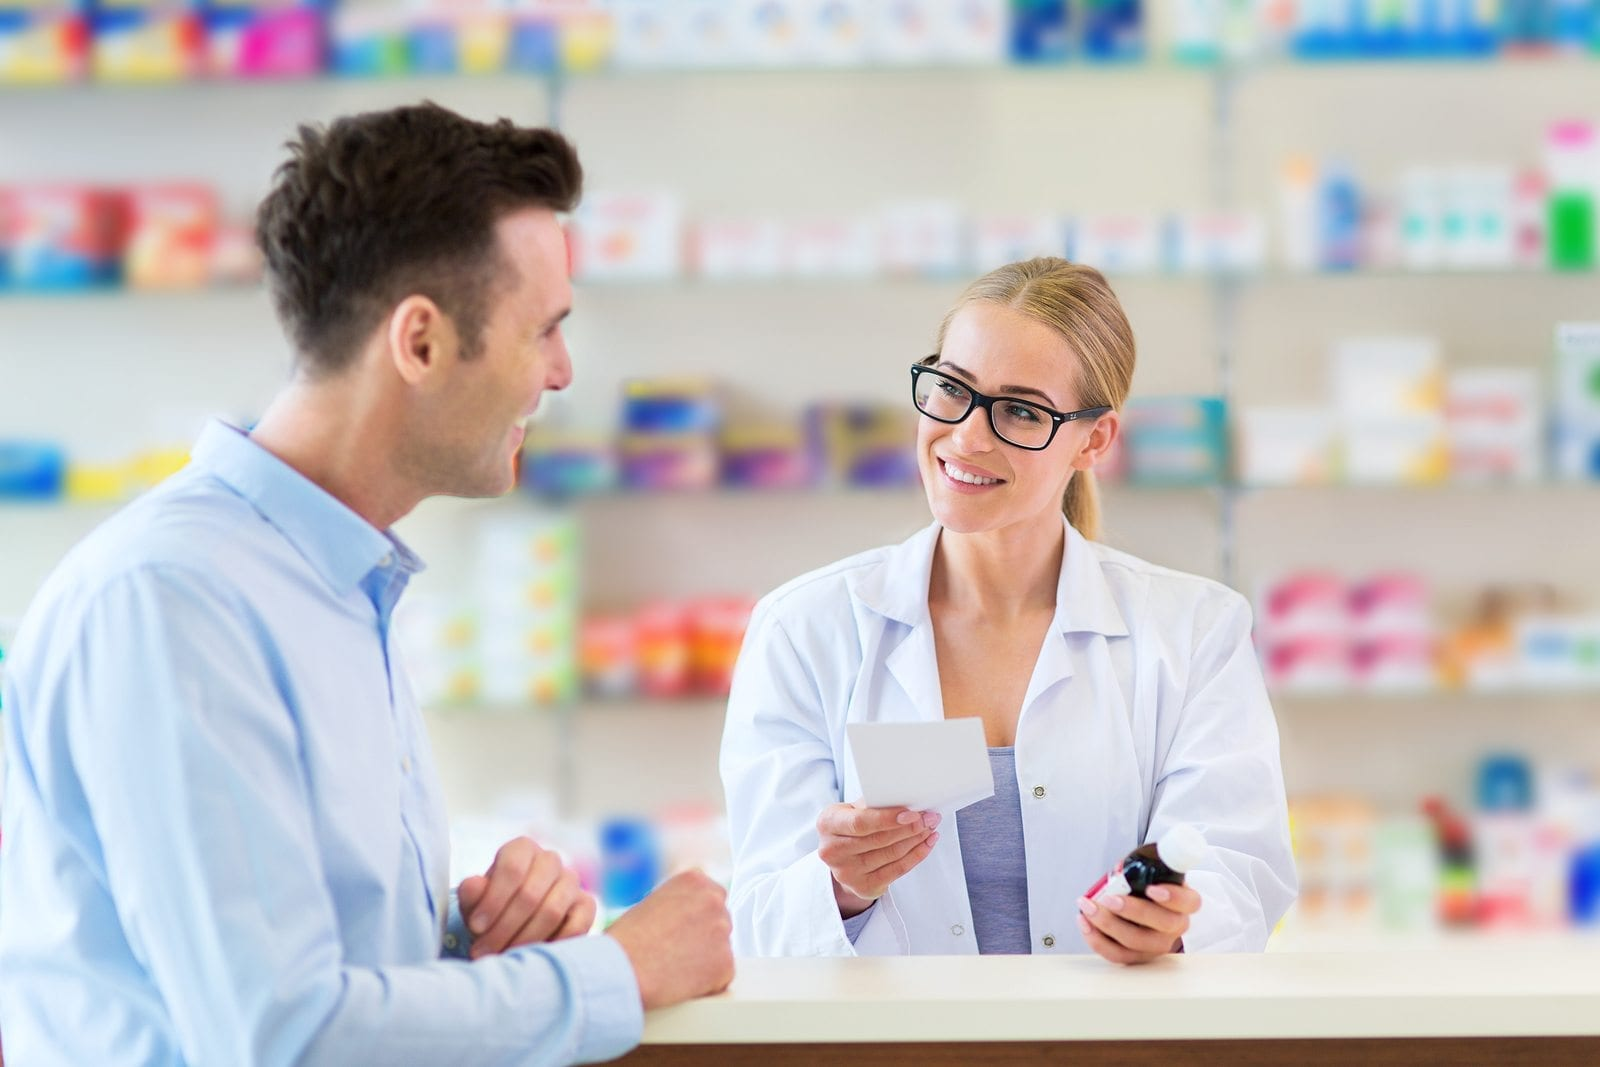 bigstock Pharmacist and client at pharm 129268391